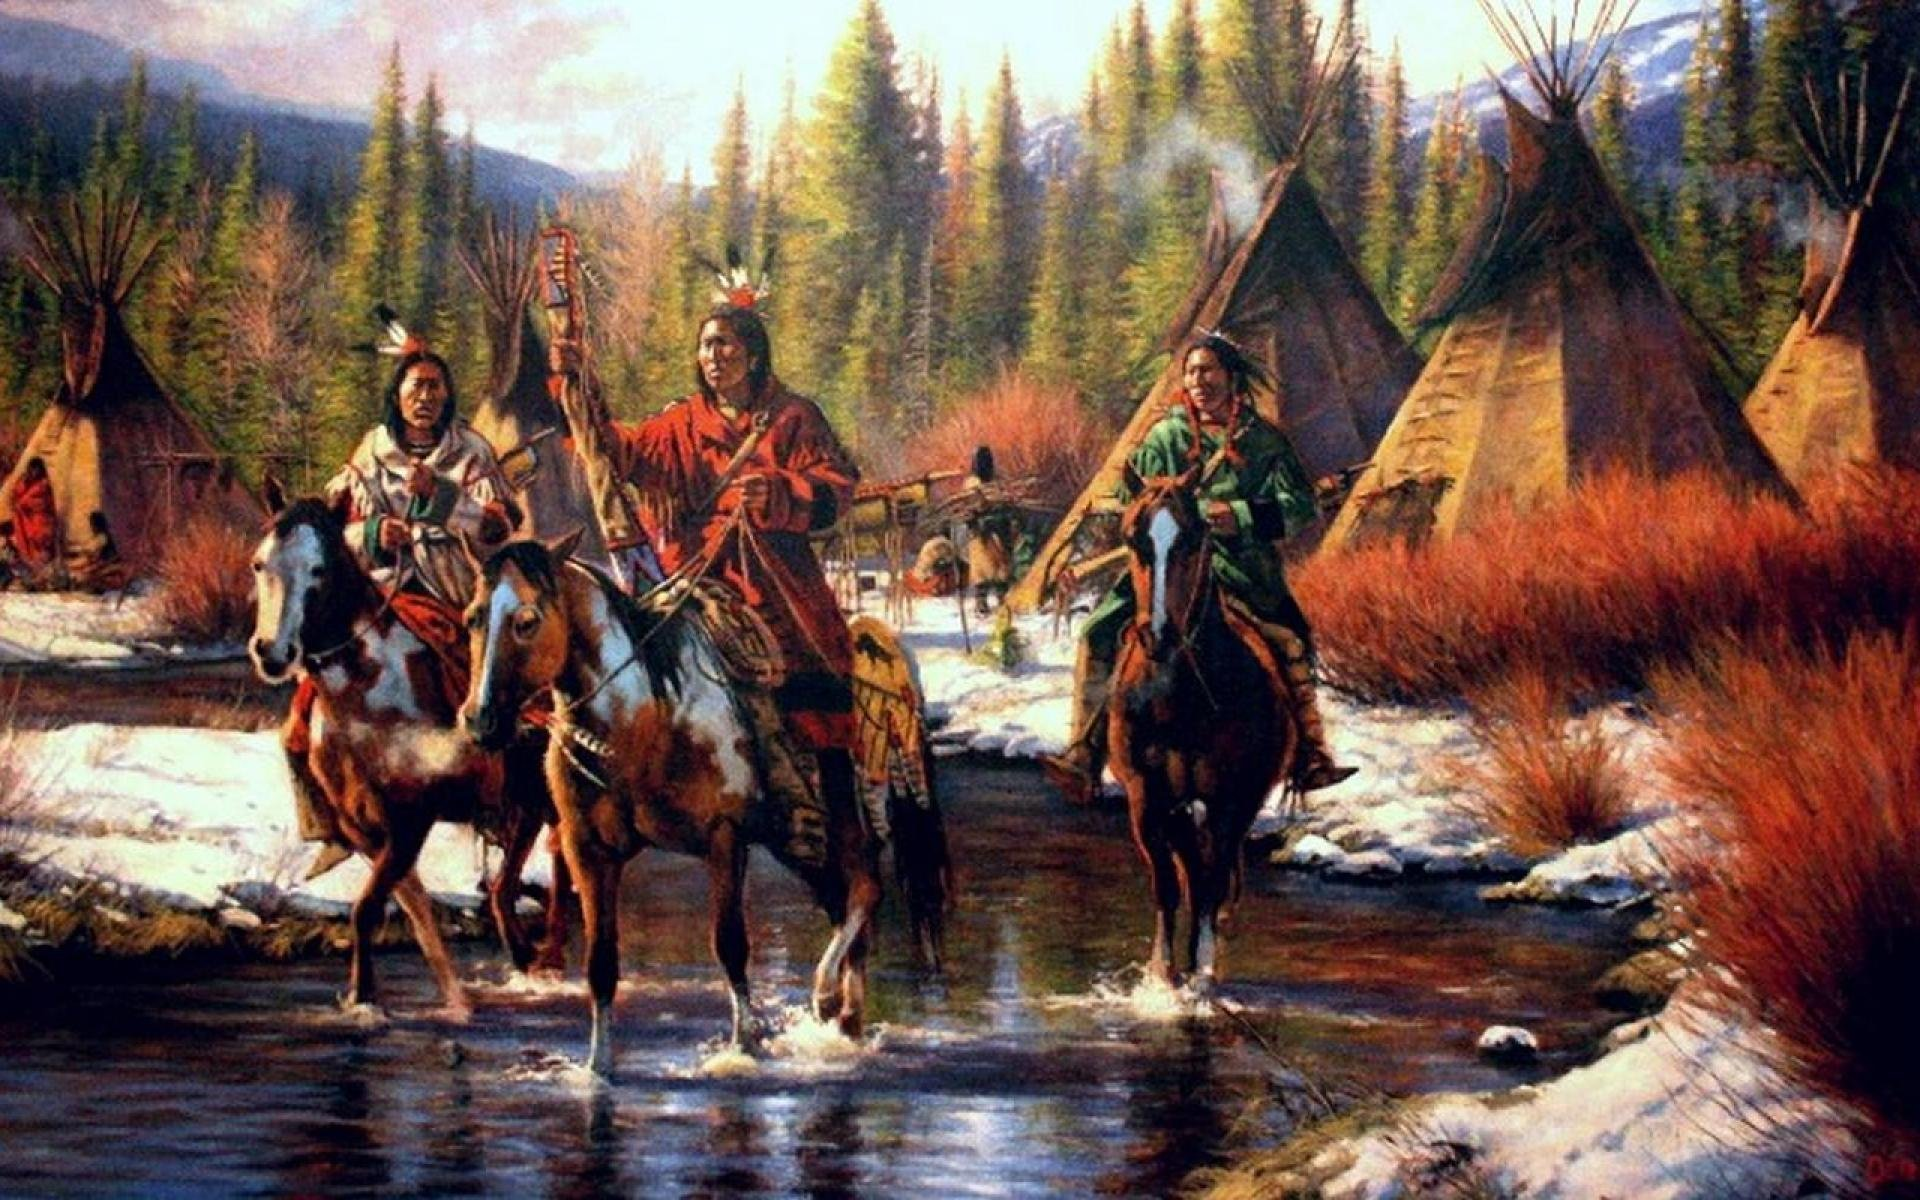 Native american indian western 55 wallpaper 1920x1200 416420 1920x1200